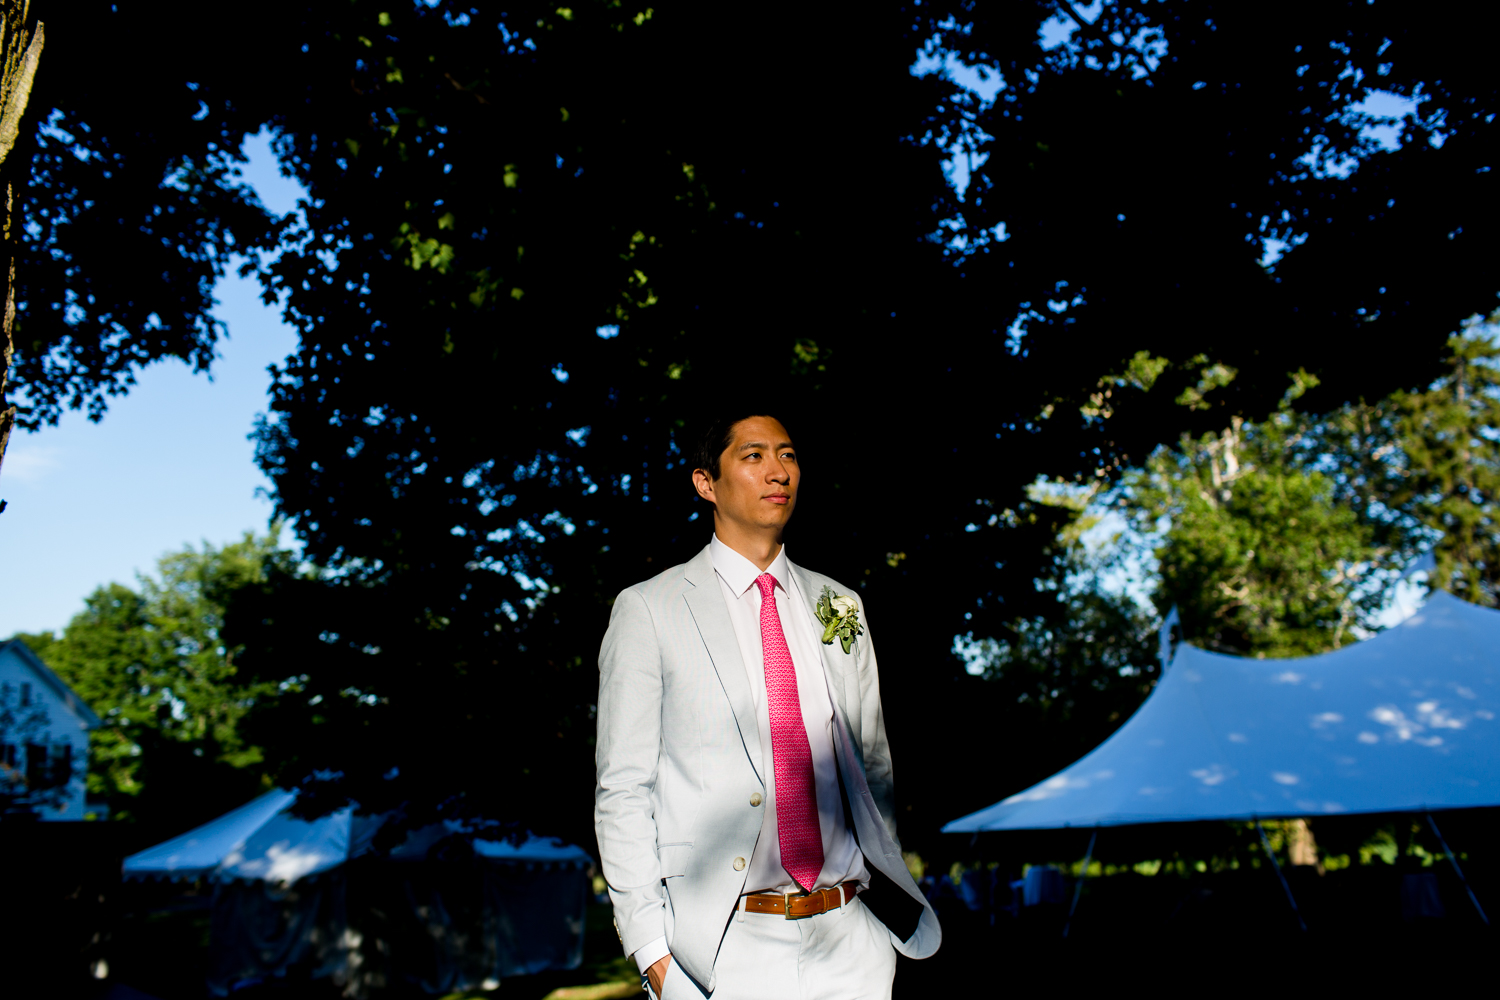 Dramatic portrait of the groom